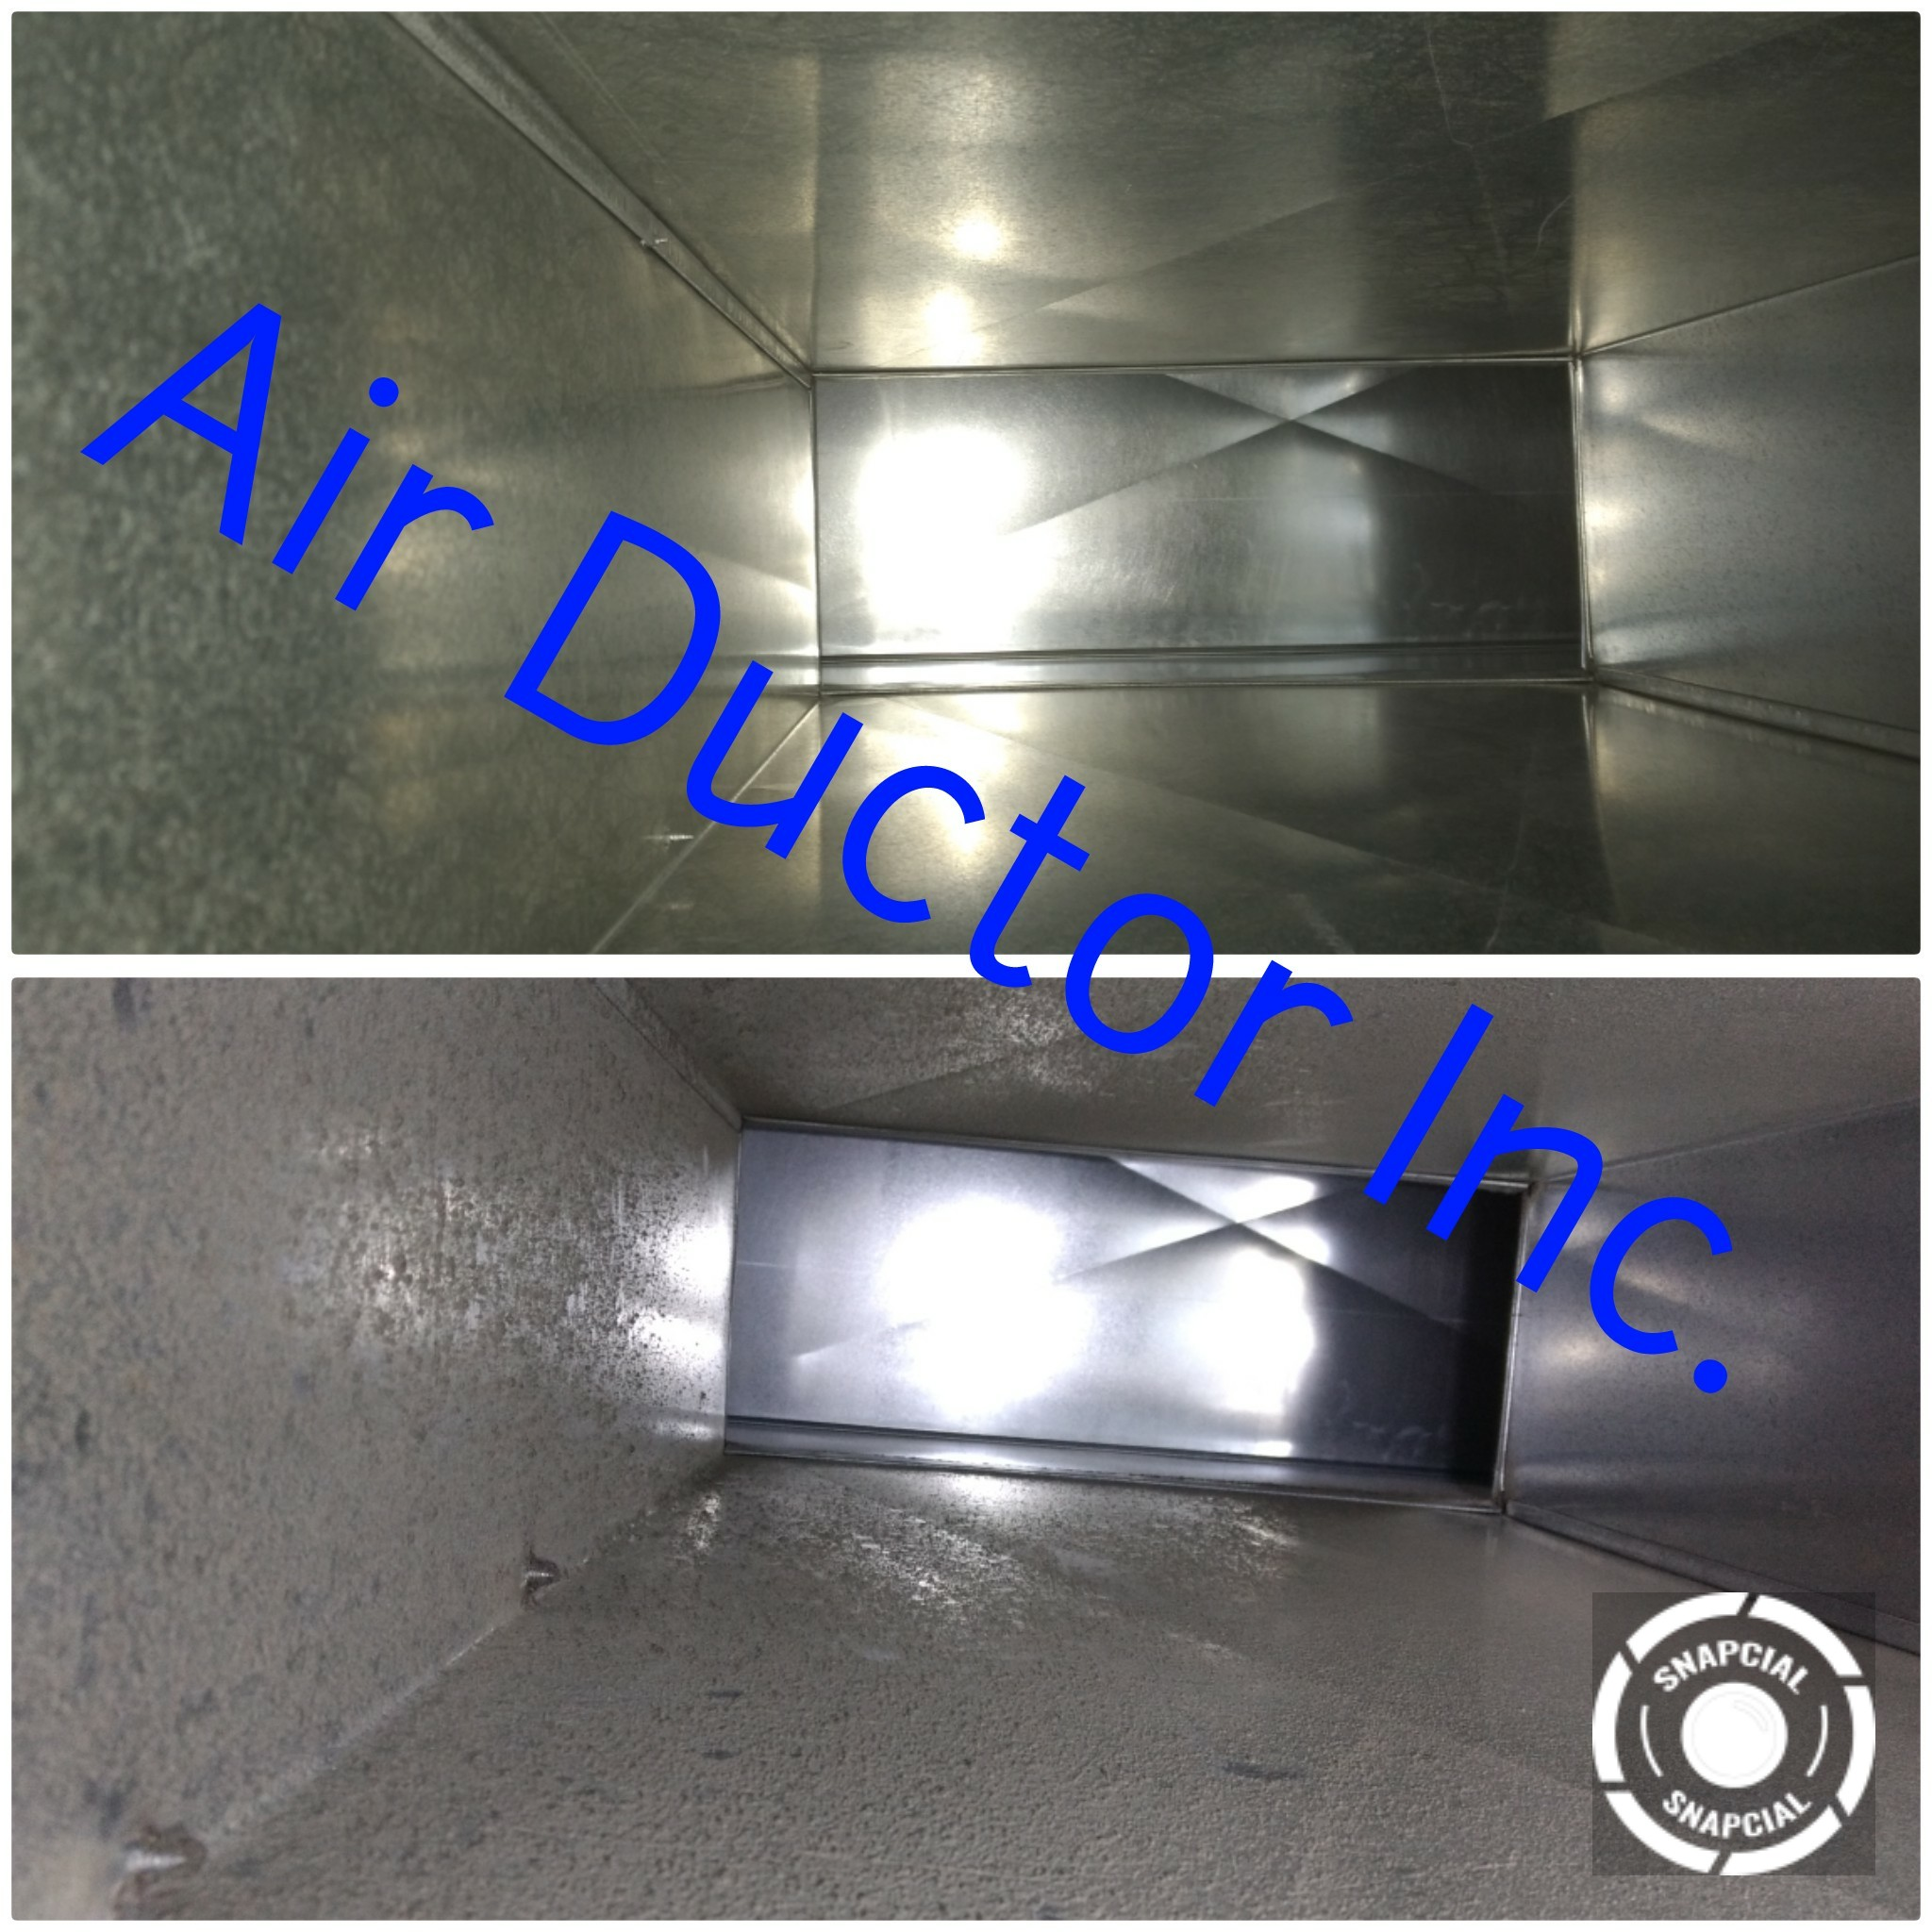 Cleaned air ducts from Air Ductor